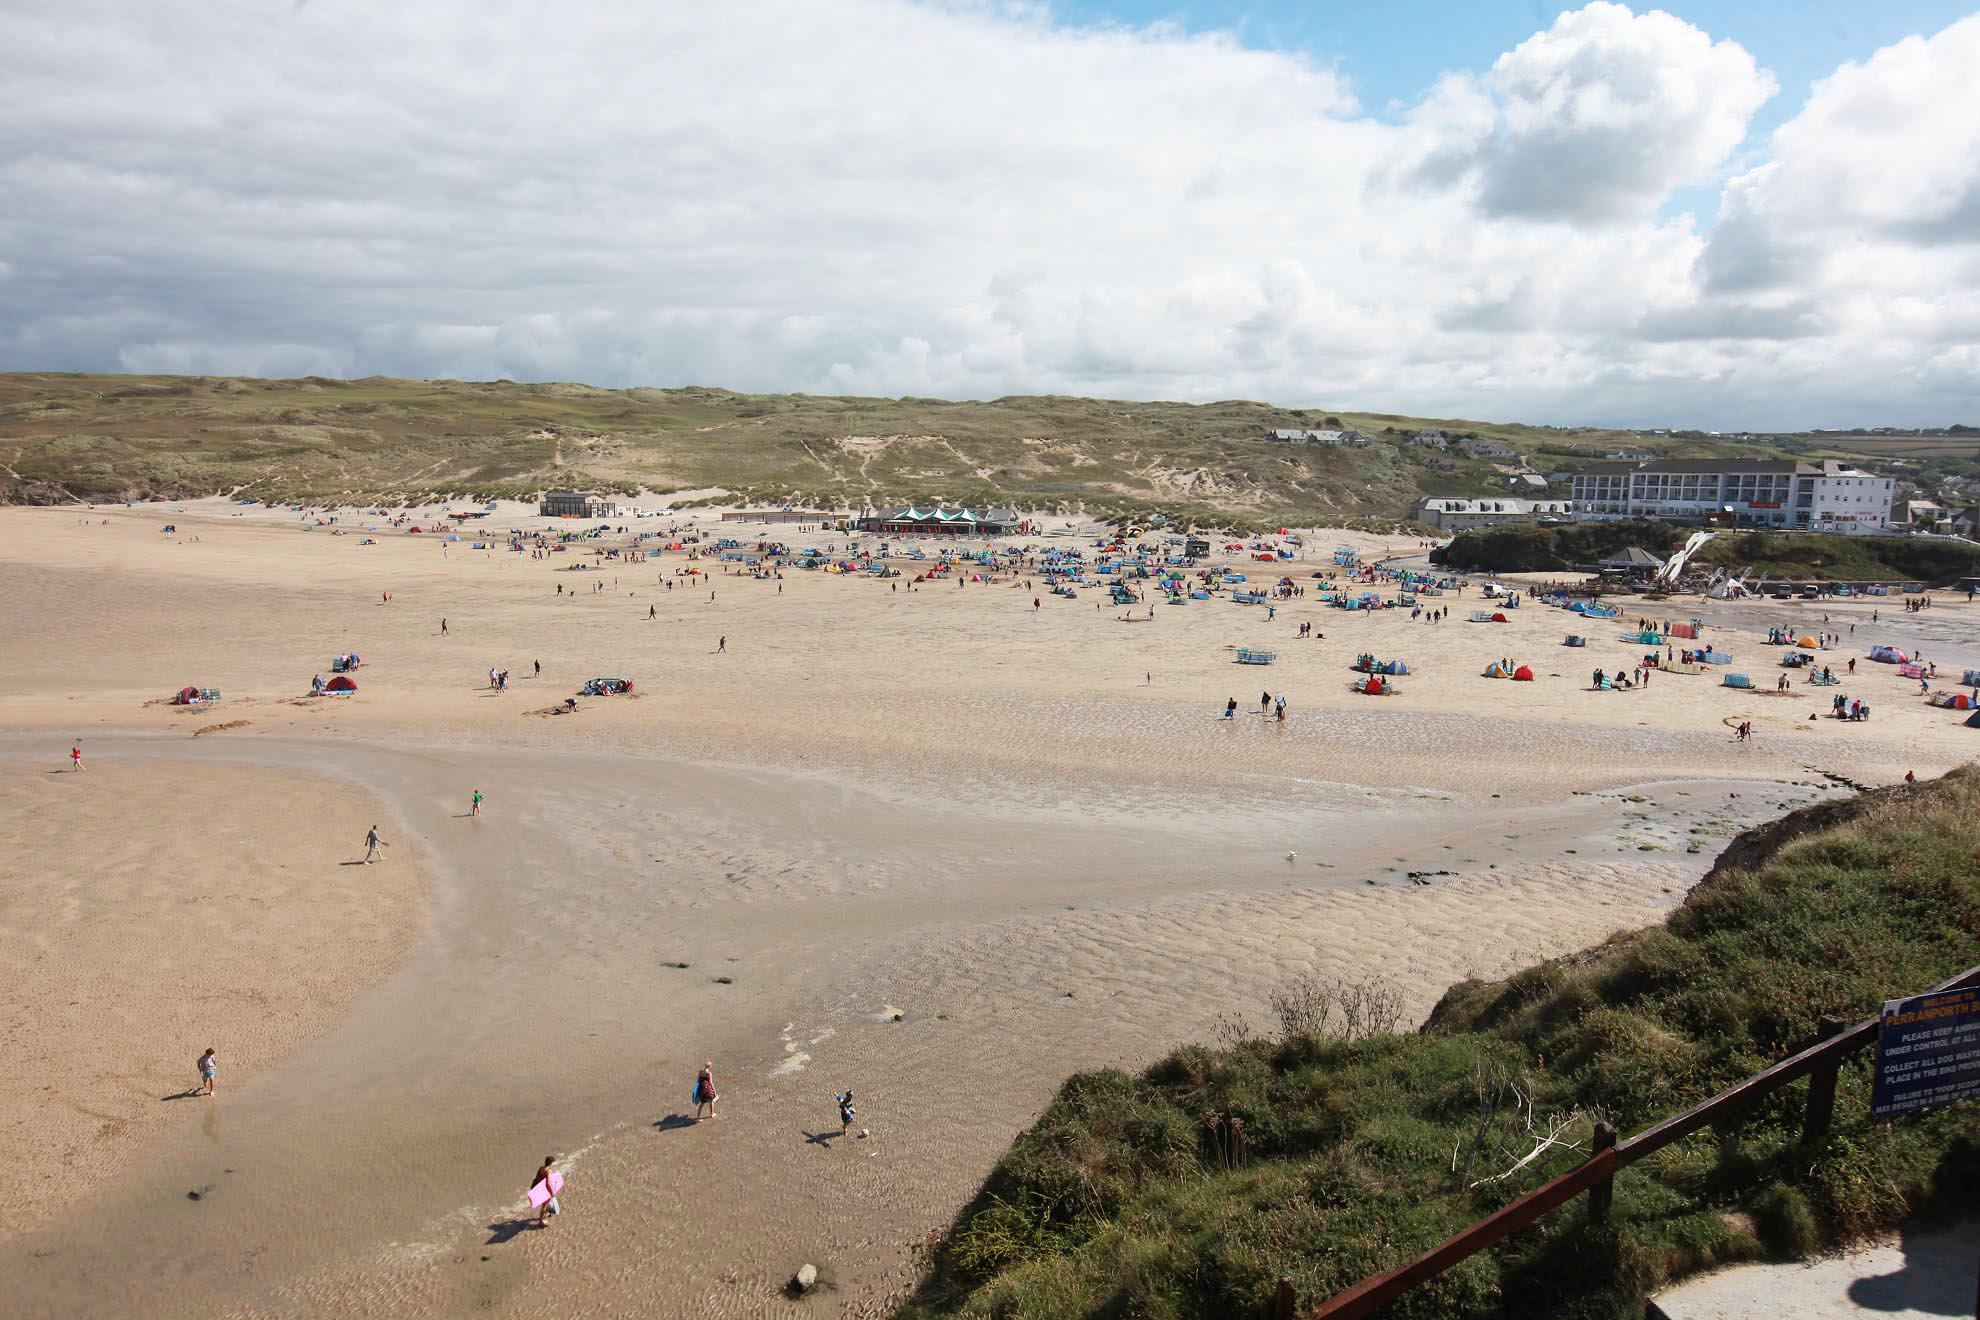 "PIC: APEX 09/08/2018 A wet fish beach-goer has been slammed after complaining that sand on a beauty spot beach was too damp for building sandcastles. The Trip Advisor review about Perranporth in Cornwall has been shared hundreds of times after being posted online. One person commented it was the funniest thing they had ever read while others said damp sand was preferable for sandcastles anyway. The reviewer who scored the two-mile long beach three out of five and said it was ""far too busy for my liking"" said: ""The beach itself looked really good for surfers, however I found the sand to be much too damp - not great for building sandcastles."" Those commenting suggested the writer ought to have moved up the beach, away from the sea. This file picture shows a general view of the beach at Perranporth. ** SEE STORY BY APEX NEWS - 01392 823144 ** ---------------------------------------------------- APEX NEWS AND PICTURES NEWS DESK: 01392 823144 PICTURE DESK: 01392 823145"